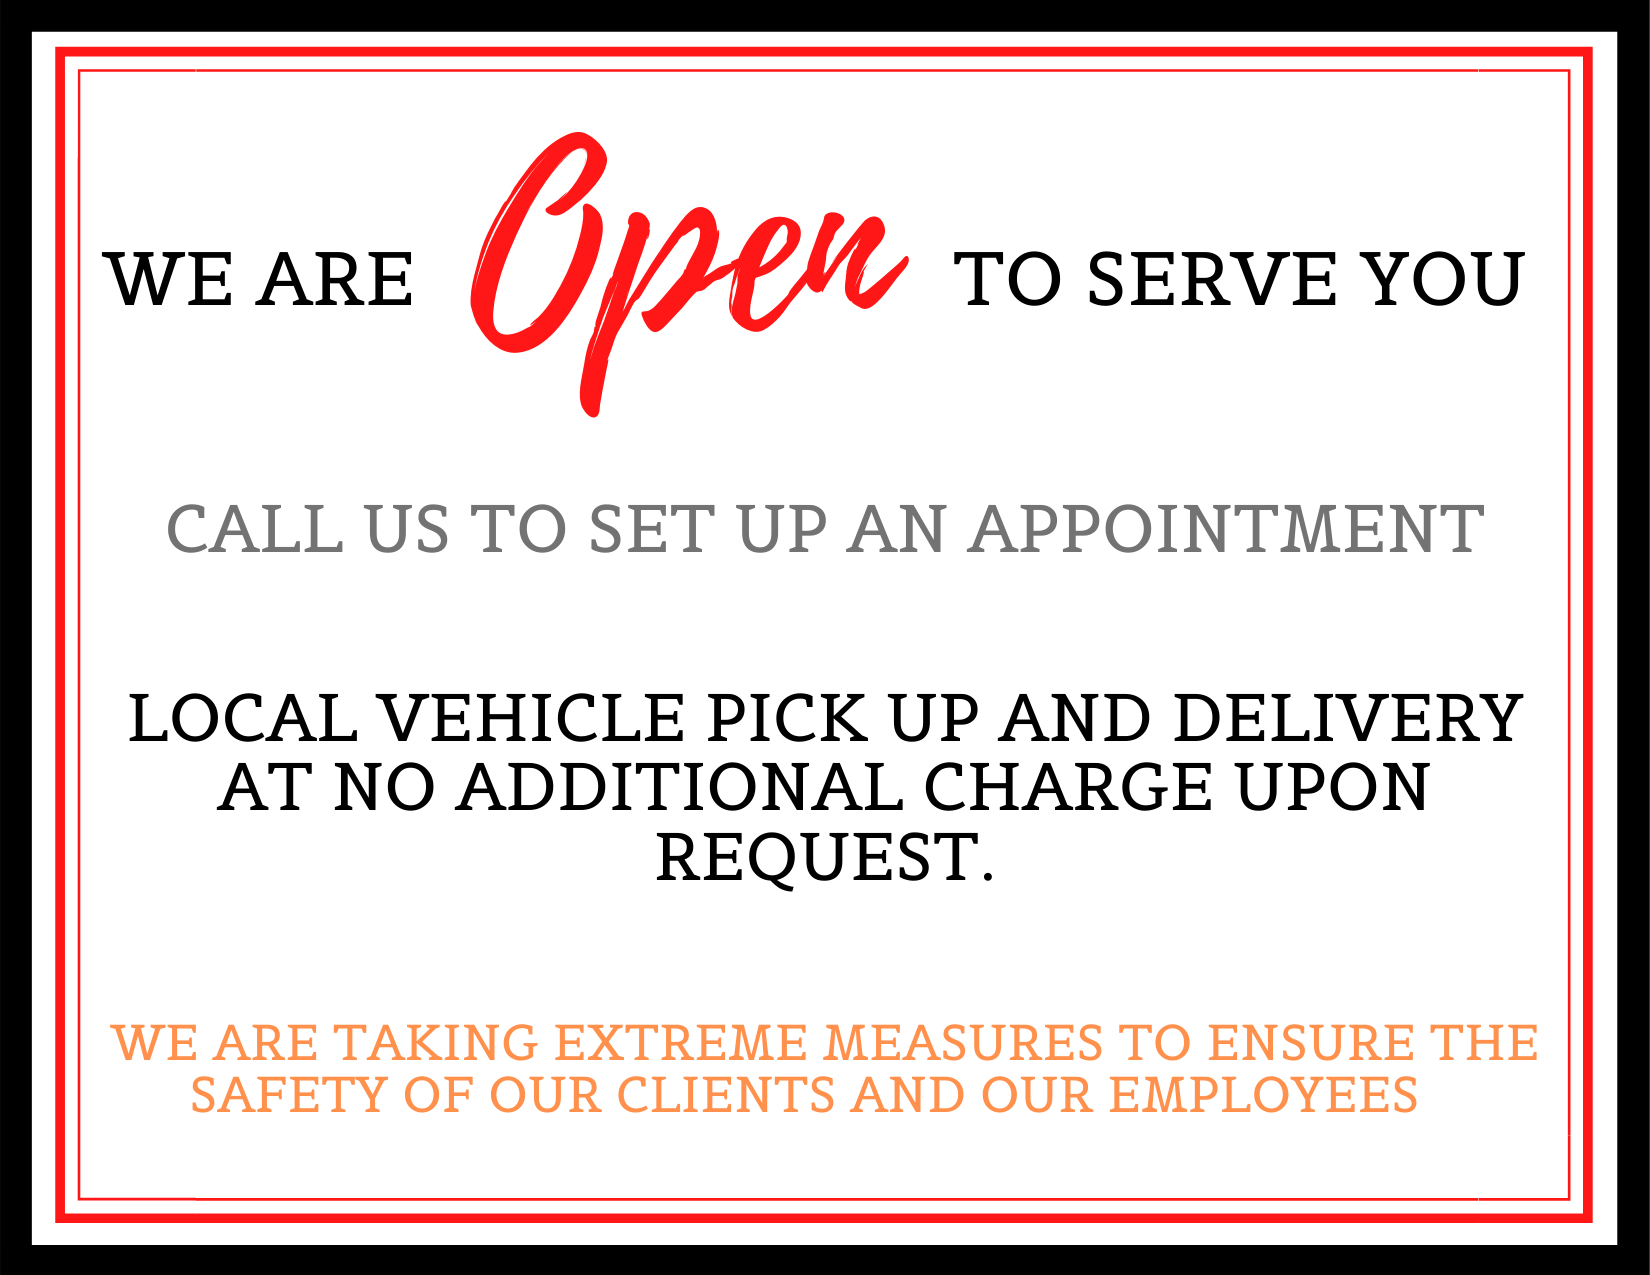 We are open to Serve you